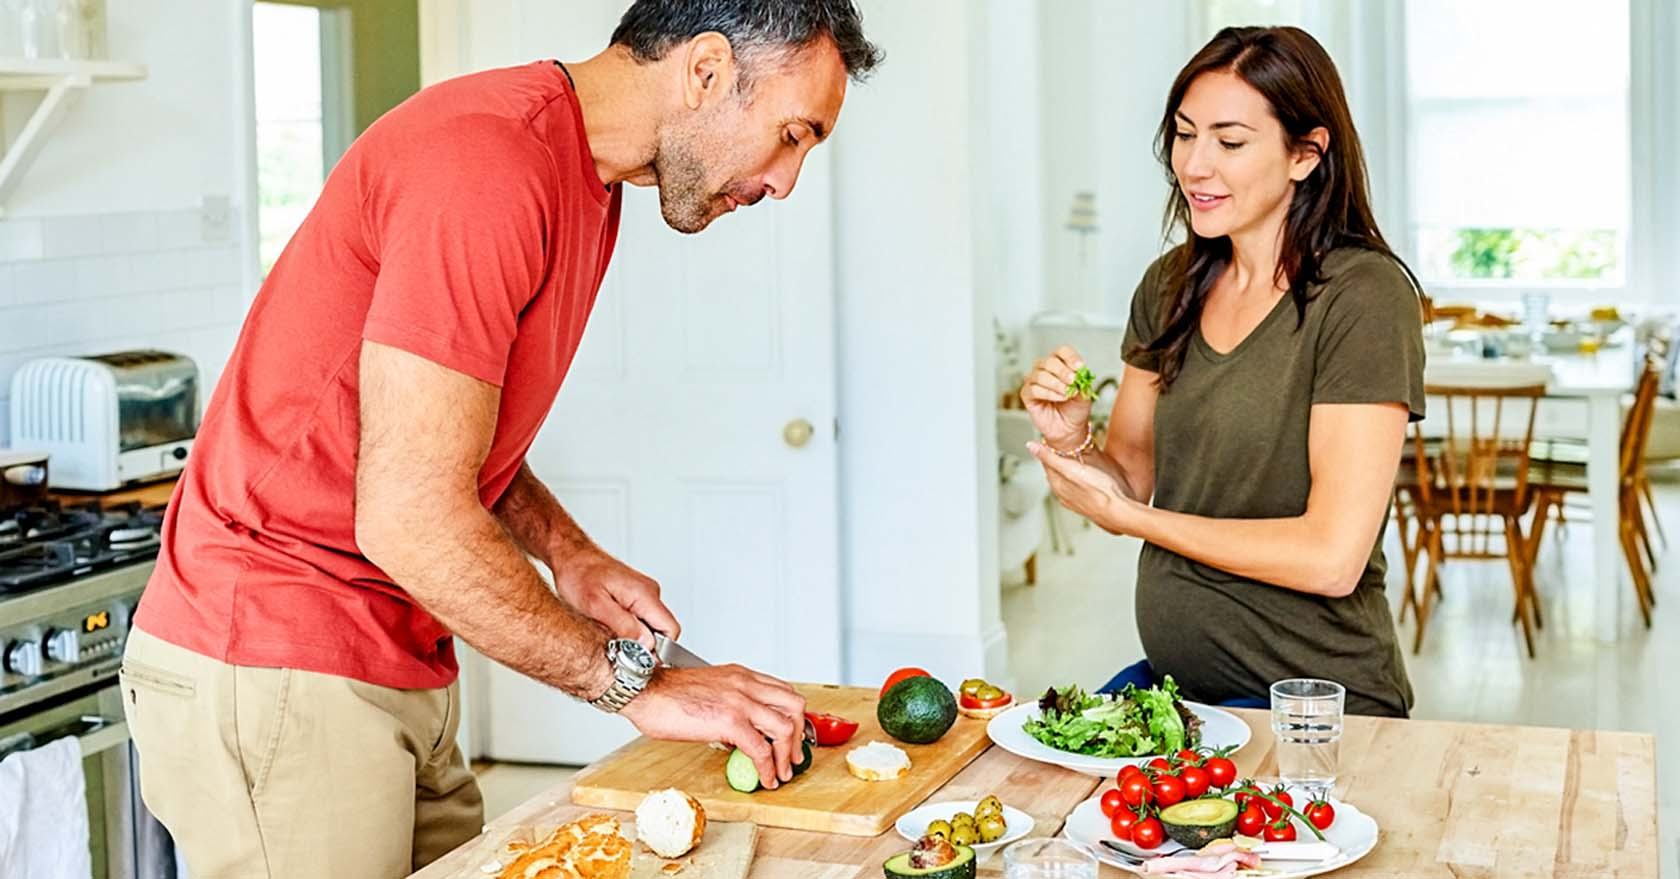 Importance Of Right Eating And Exercise